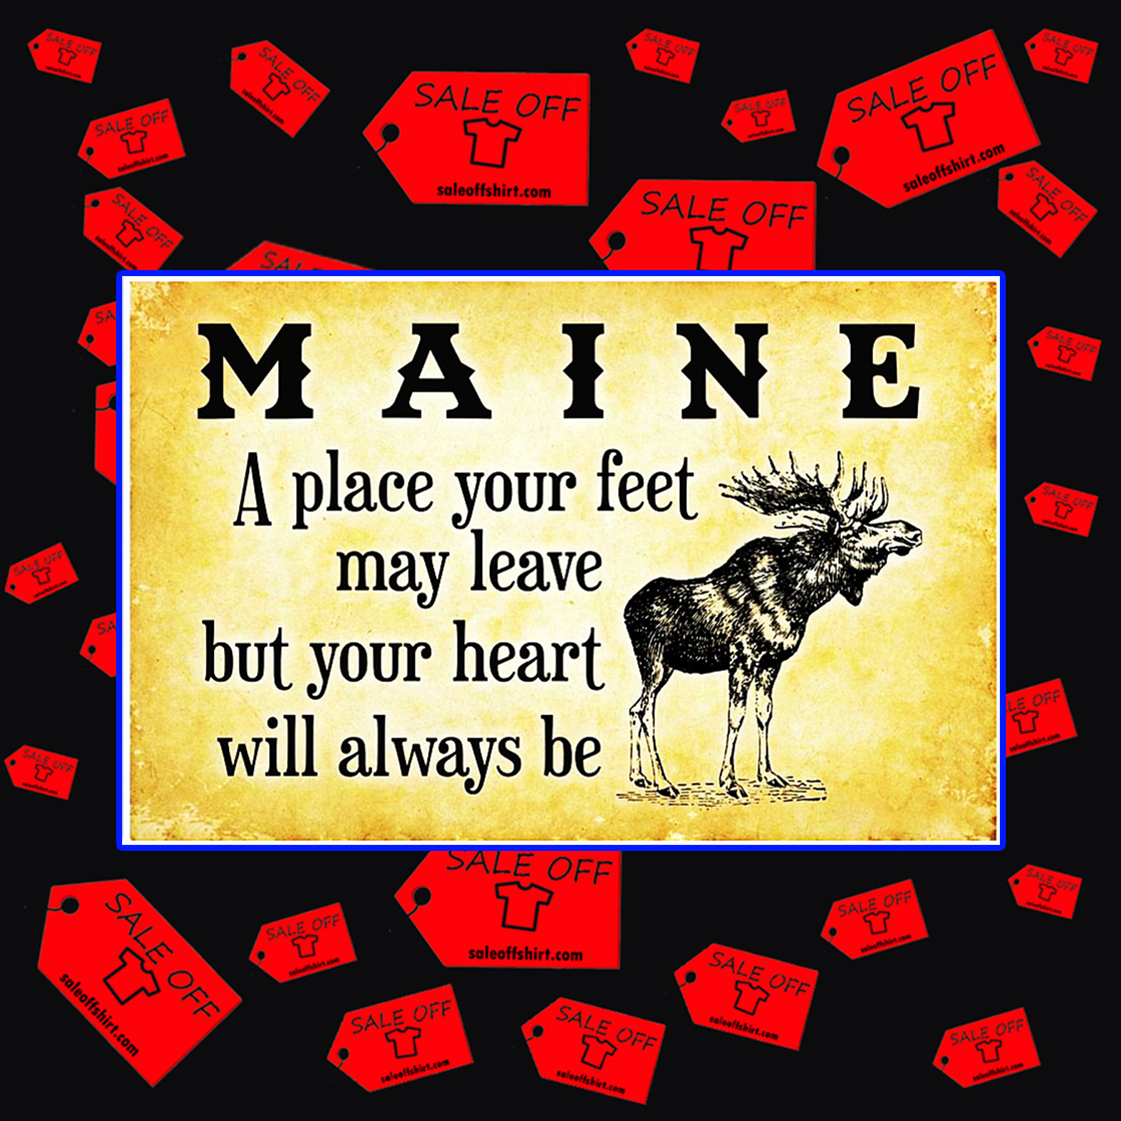 Maine a place your feet may leave but your heart will always be poster 24x16